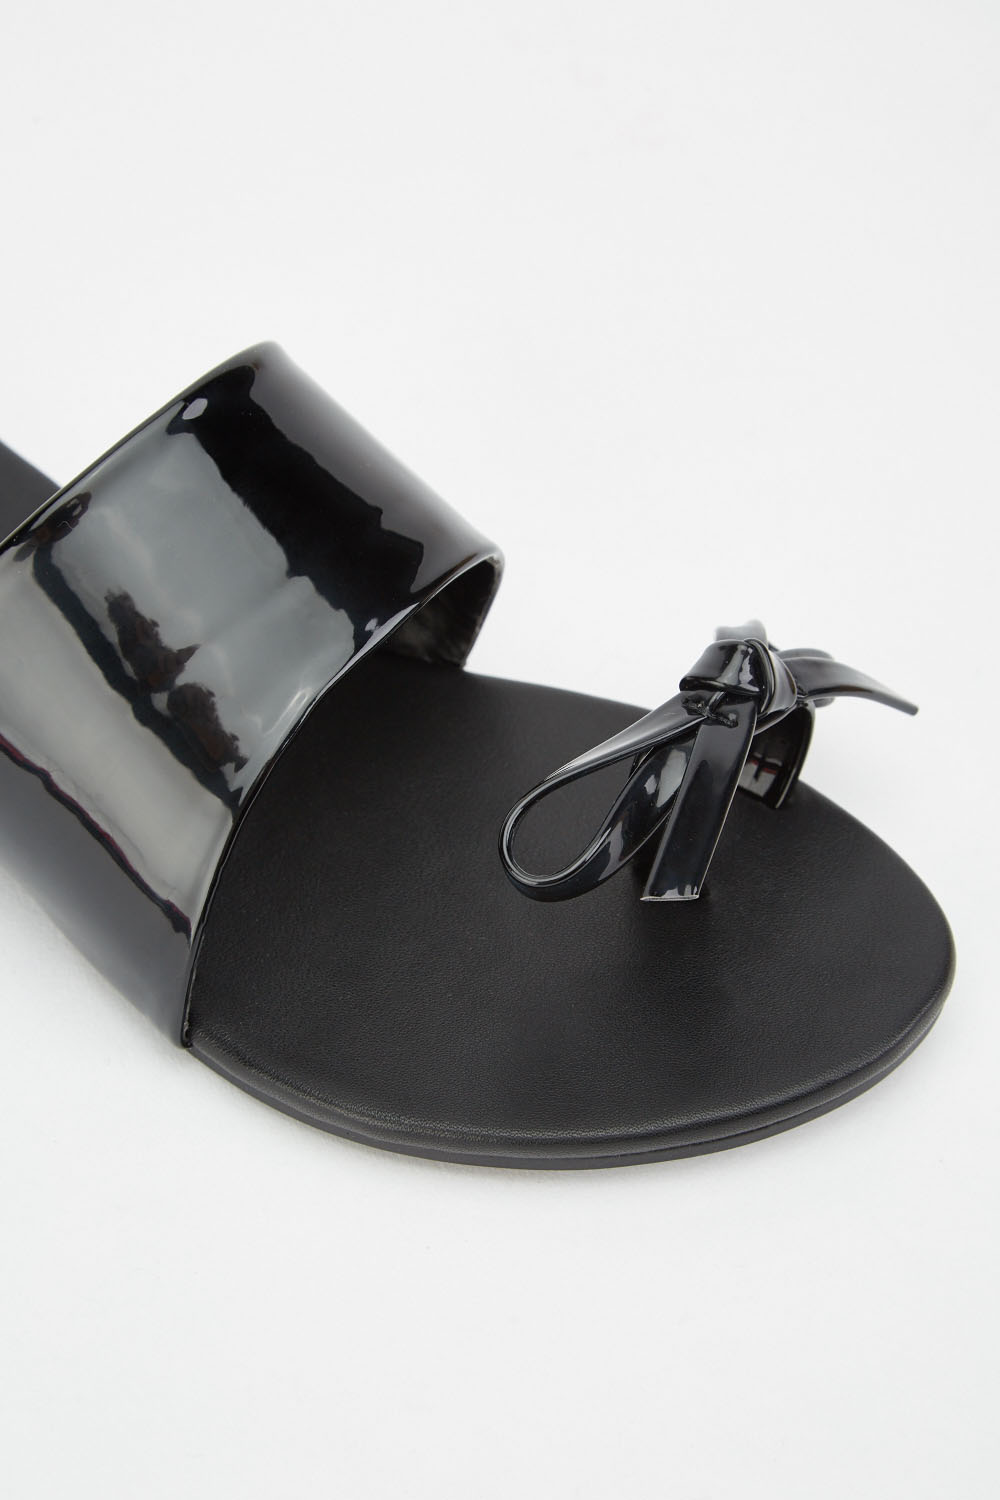 5db41c6f5 LOST INK Toe Post Bow Flat Sandal - Black - Just £5